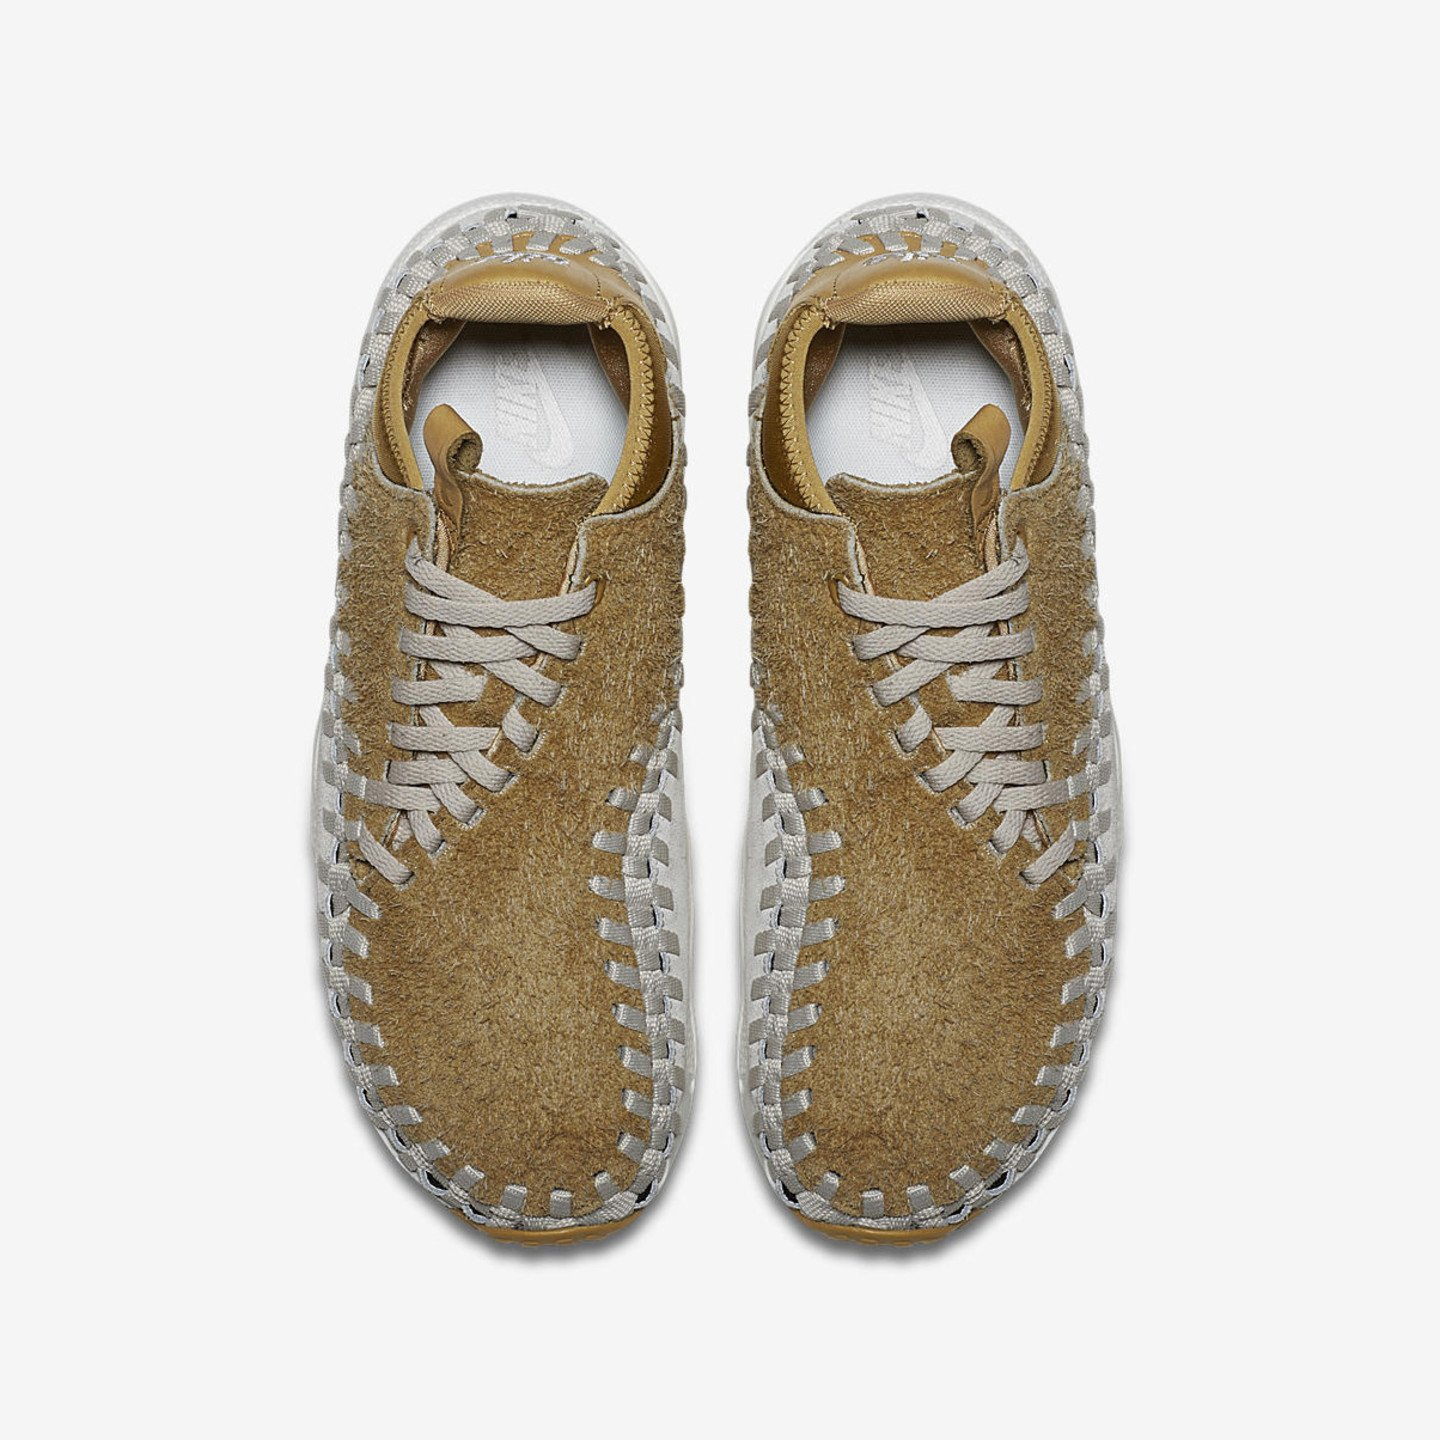 Nike Air Footscape Woven Chukka QS Flat Gold / Light Orewood Brown 913929-700